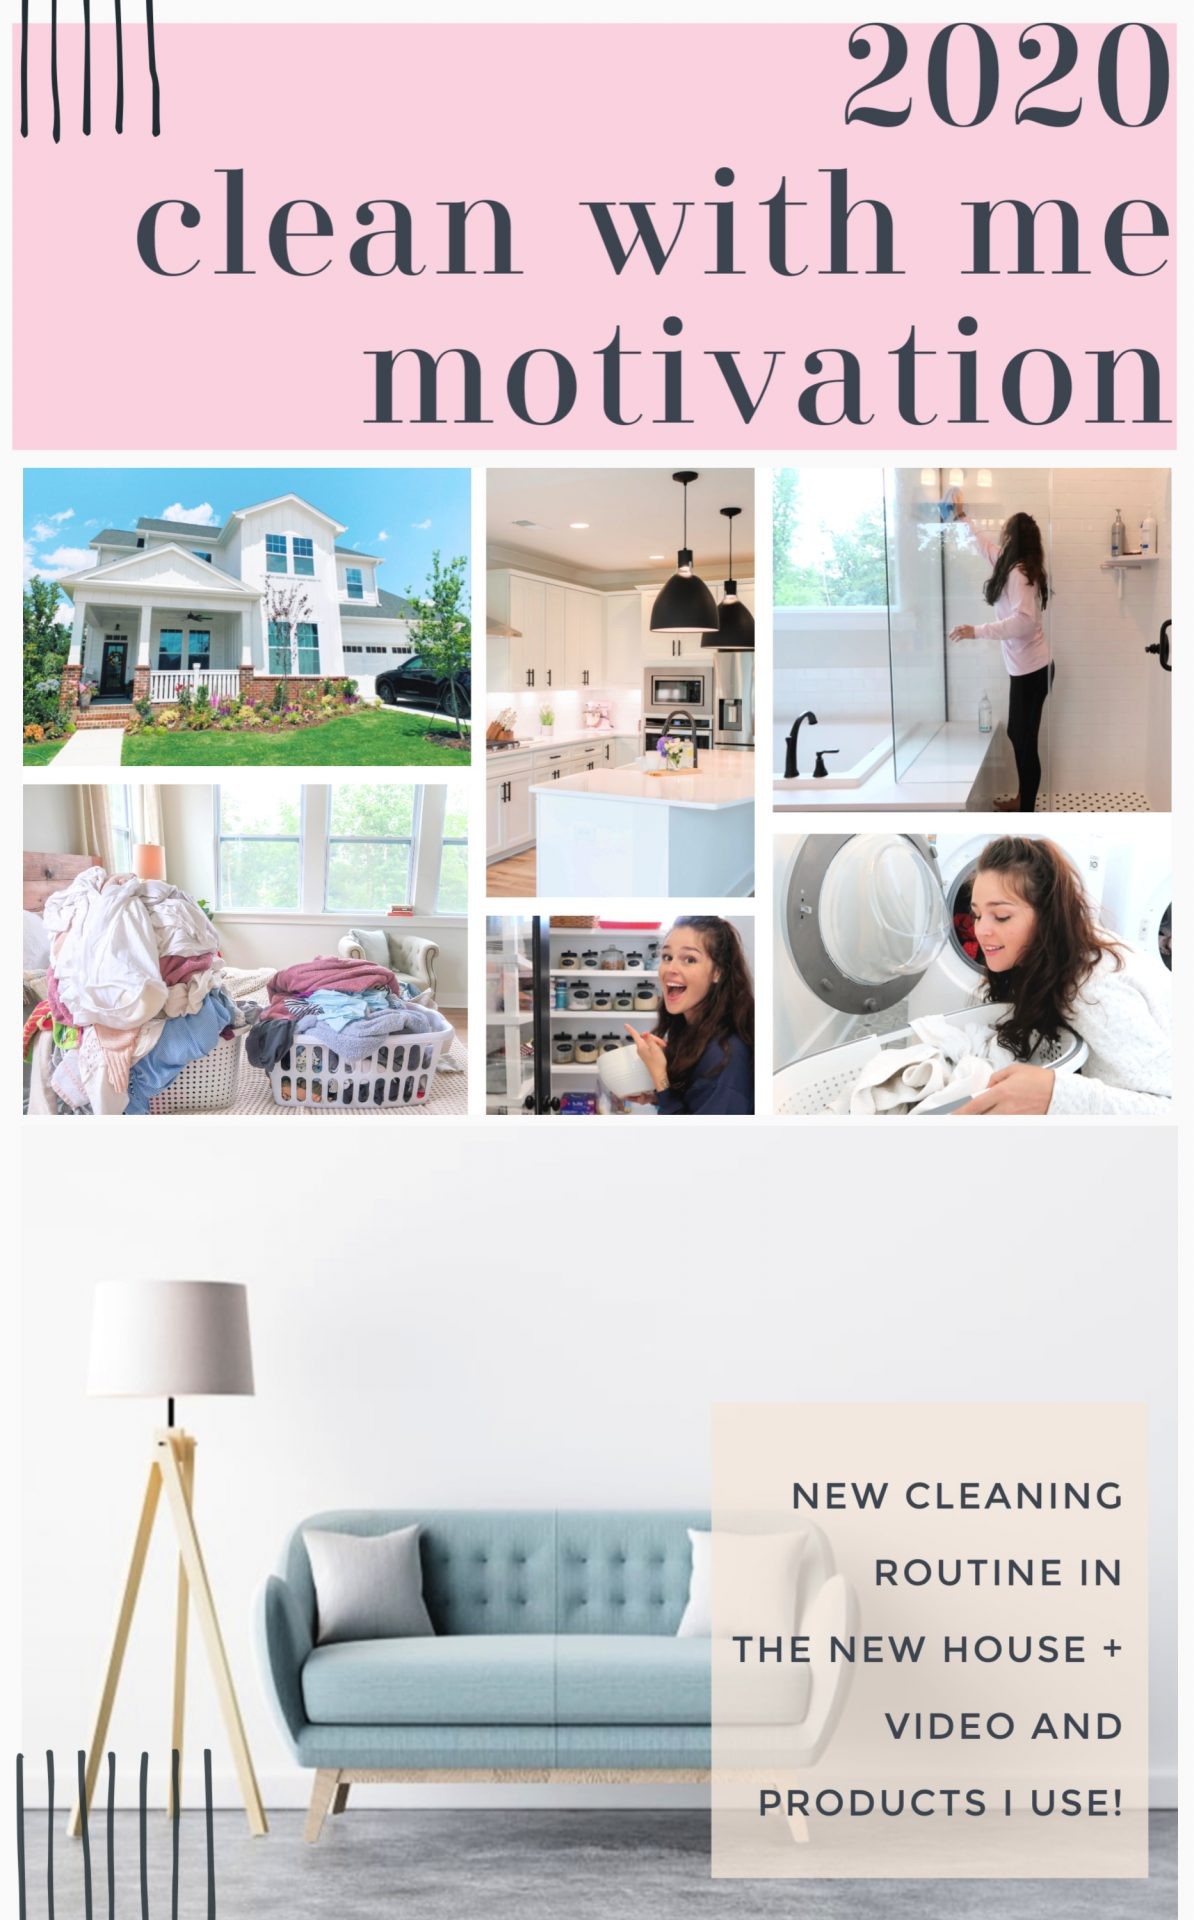 clean with me, cleaning motivation, my home, clean routine, clean the house, products, organic, natural, home decor, home tour, organize, declutter